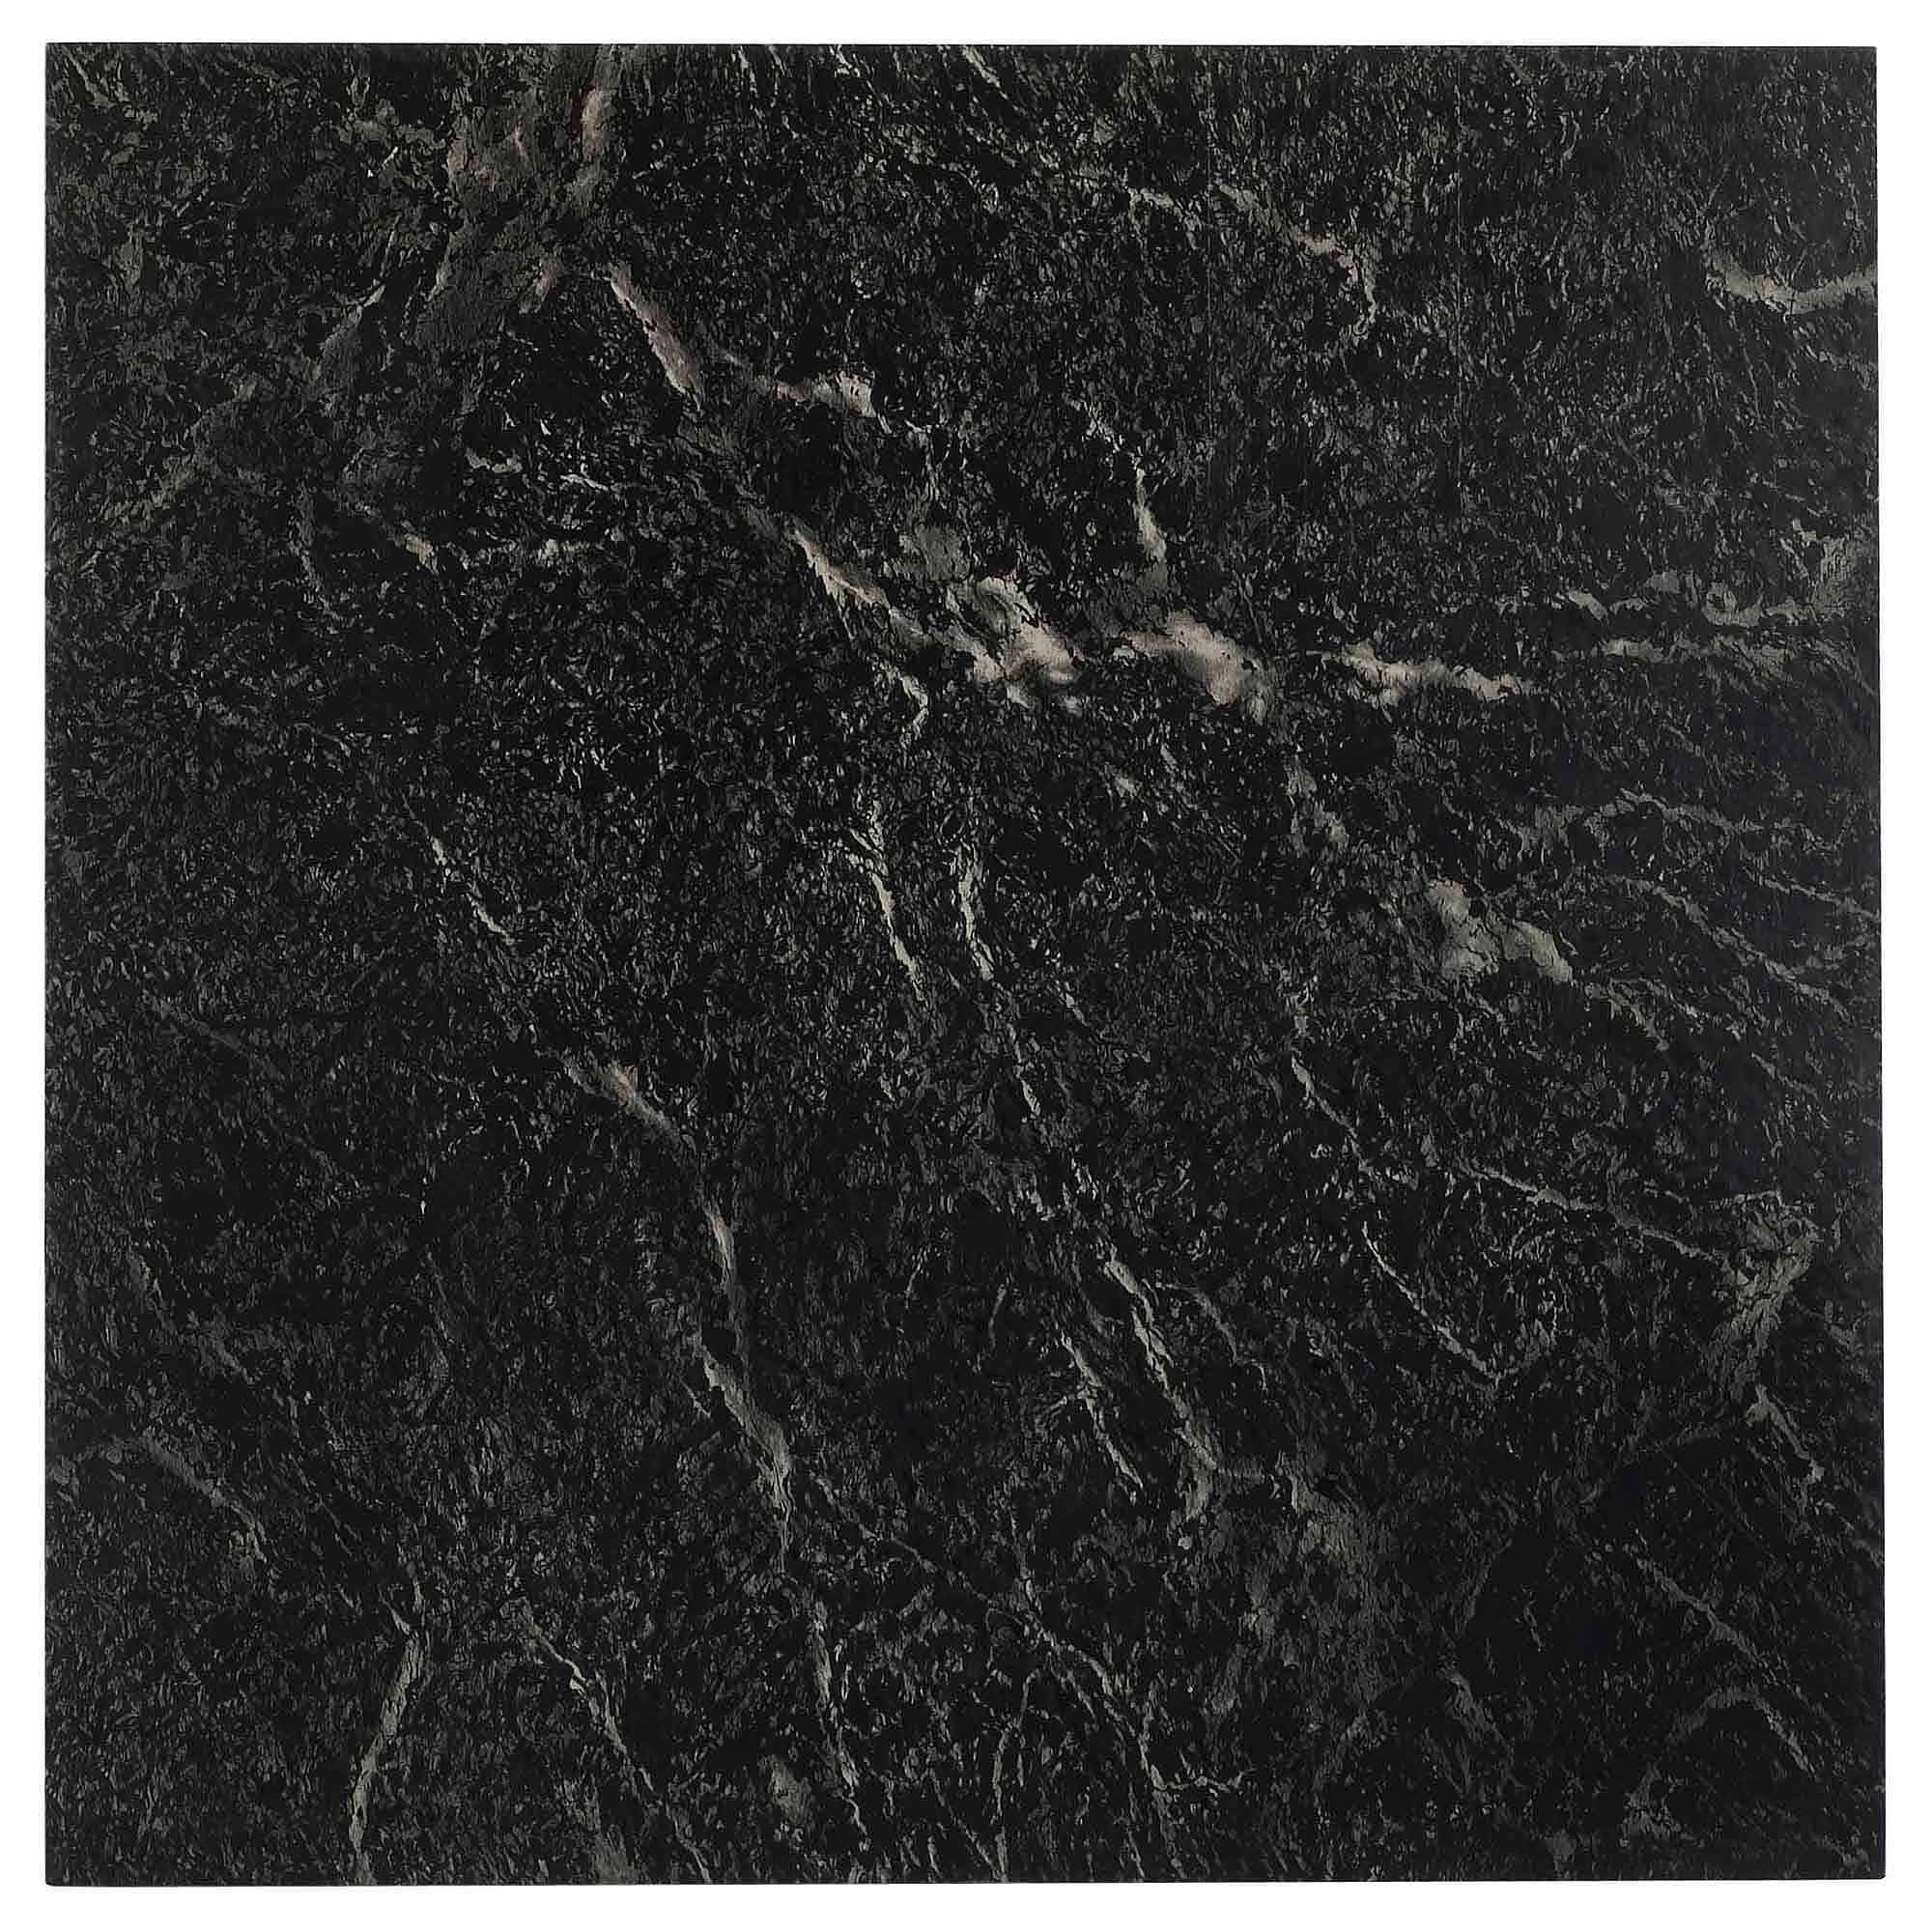 NEXUS Black with White Vein Marble 12x12 Self Adhesive Vinyl Floor Tile - 20 Tiles/20 Sq.Ft.